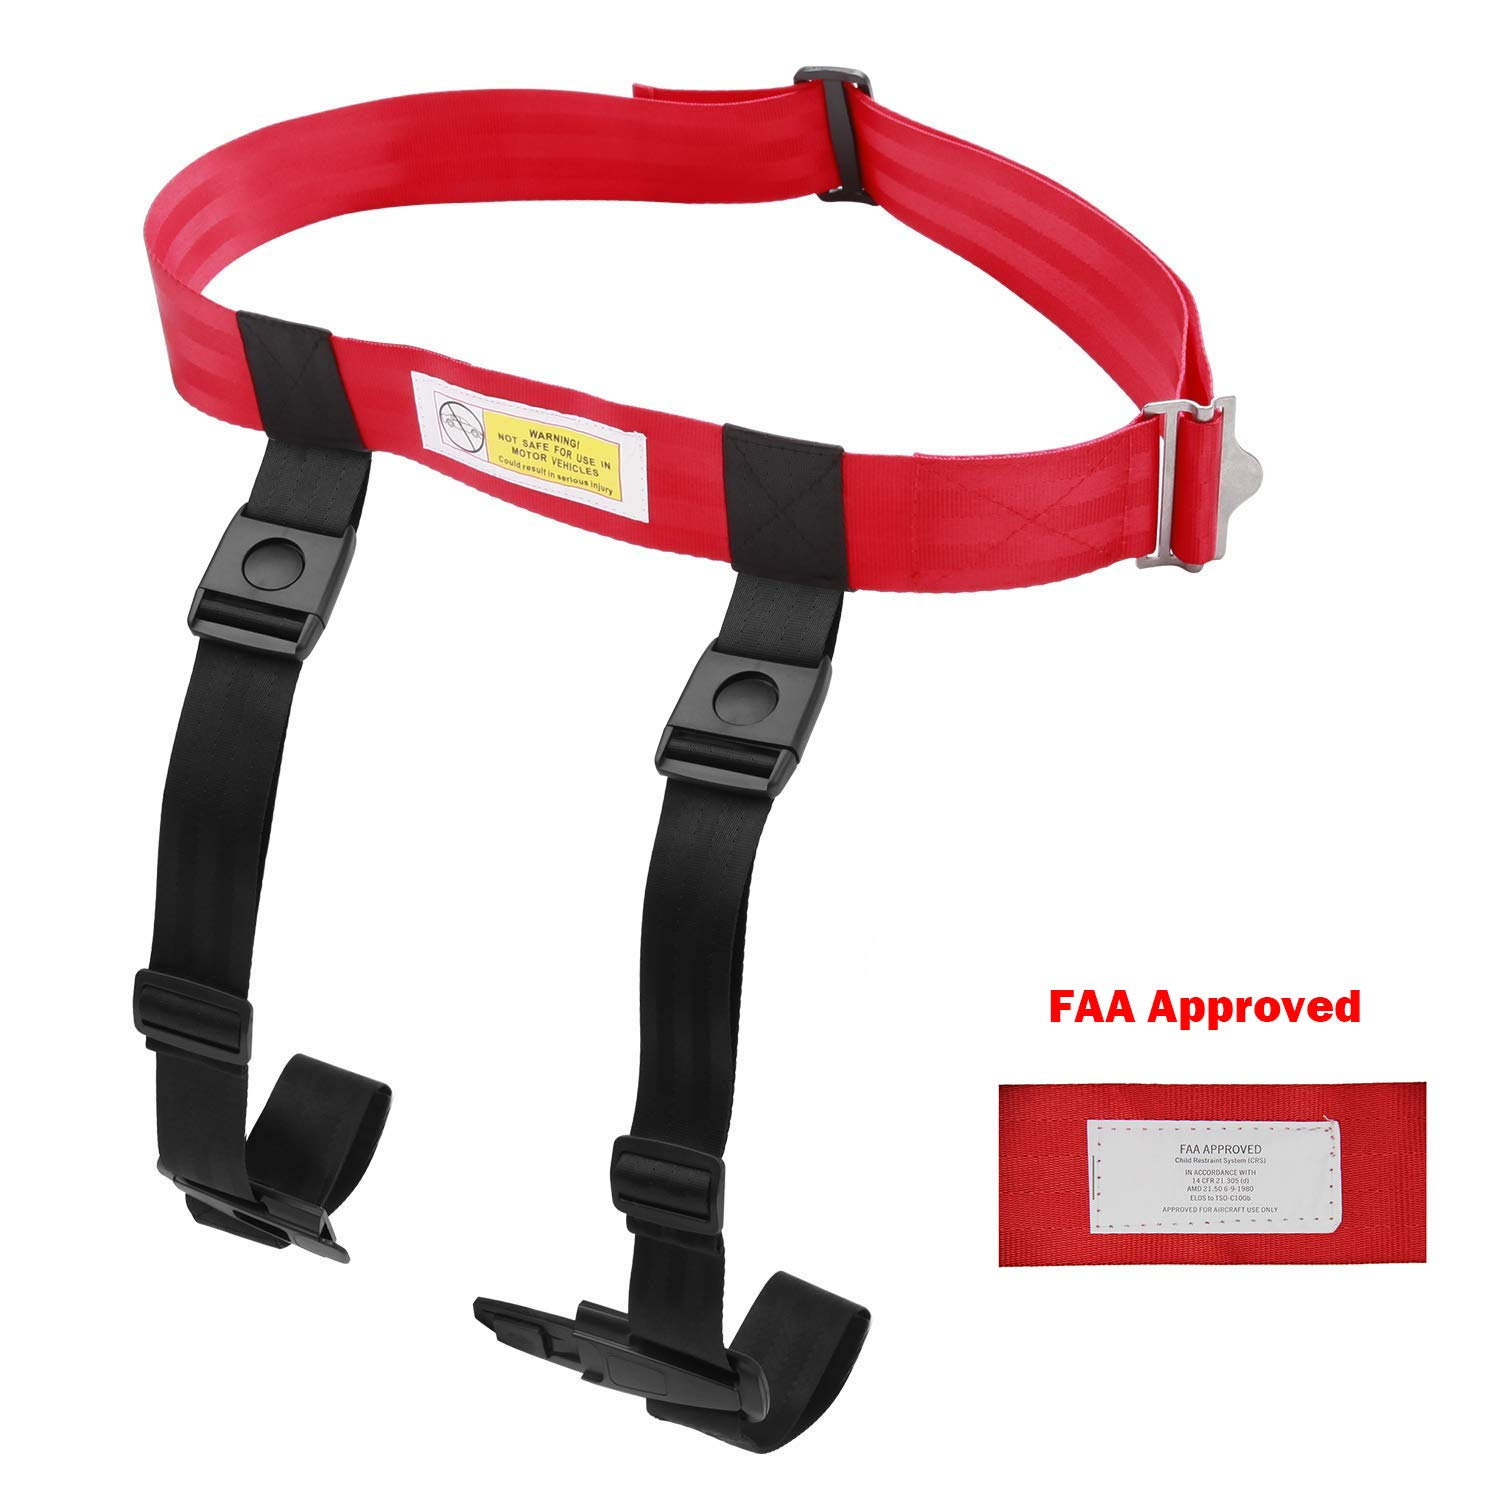 BetterJonny Child Airplane Safety Harness, Kids Airplane Travel Harness Cares Safety Restraint System Baby Travel Safety Protection